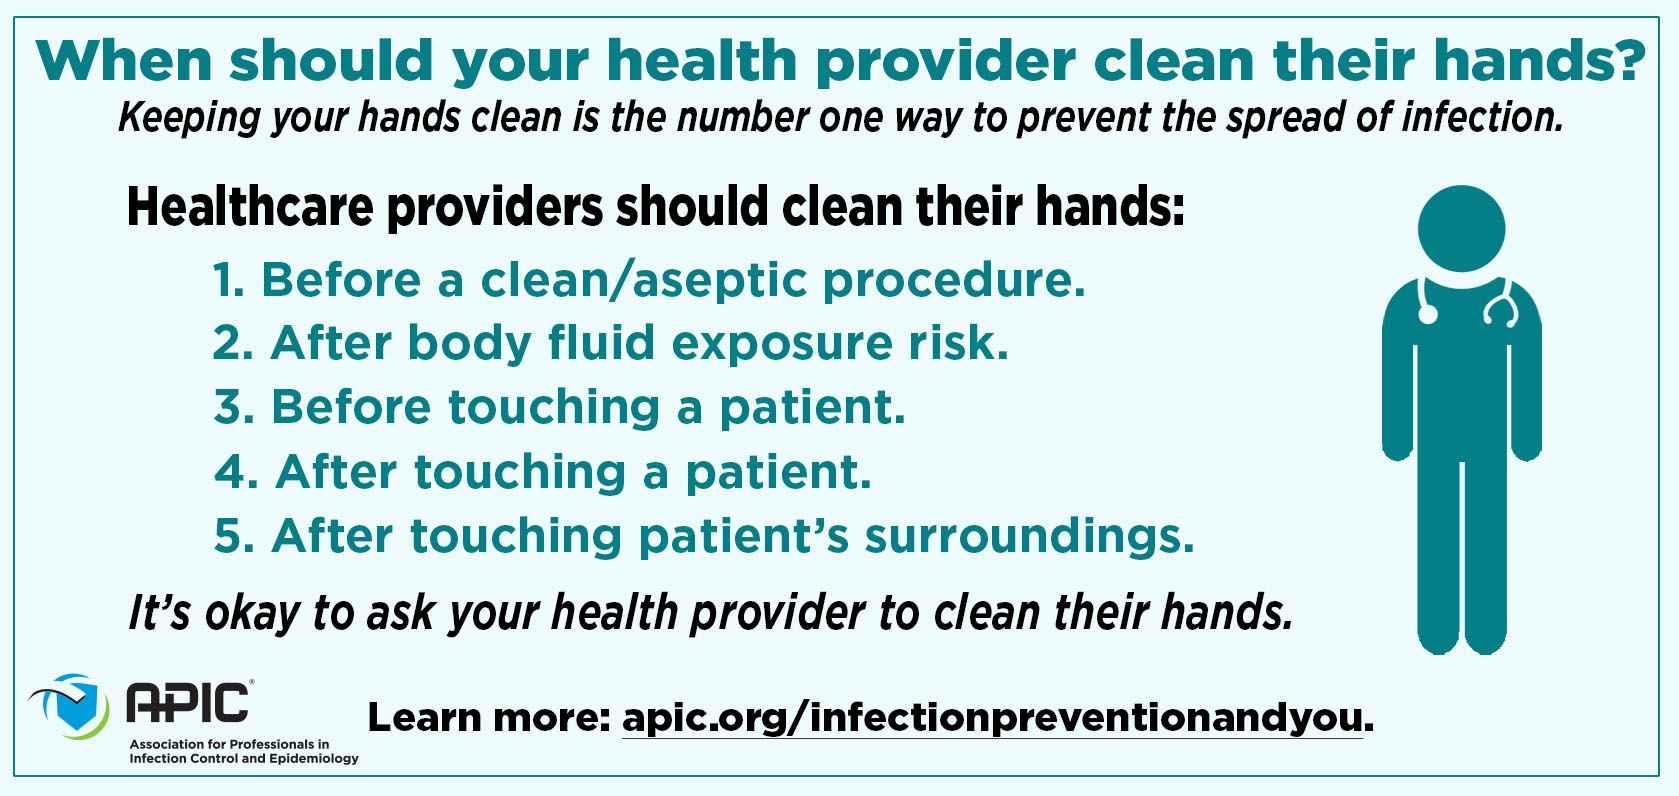 Apic visit apic for more resources on proper hand hygiene 1betcityfo Images